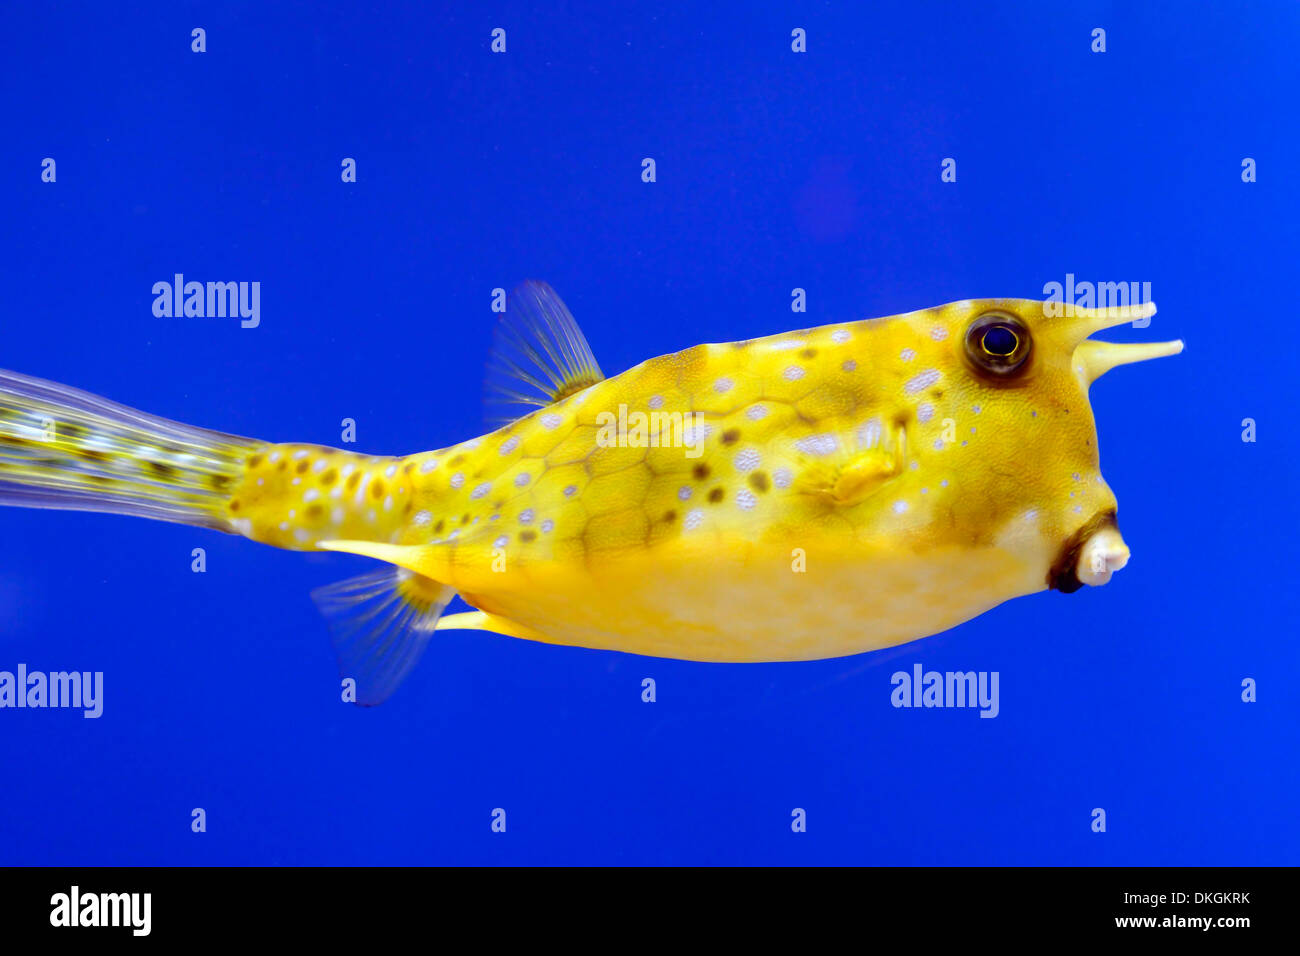 longhorn cowfish lactoria cornuta yellow fish blue background contrast contrasting color colour colors stock image